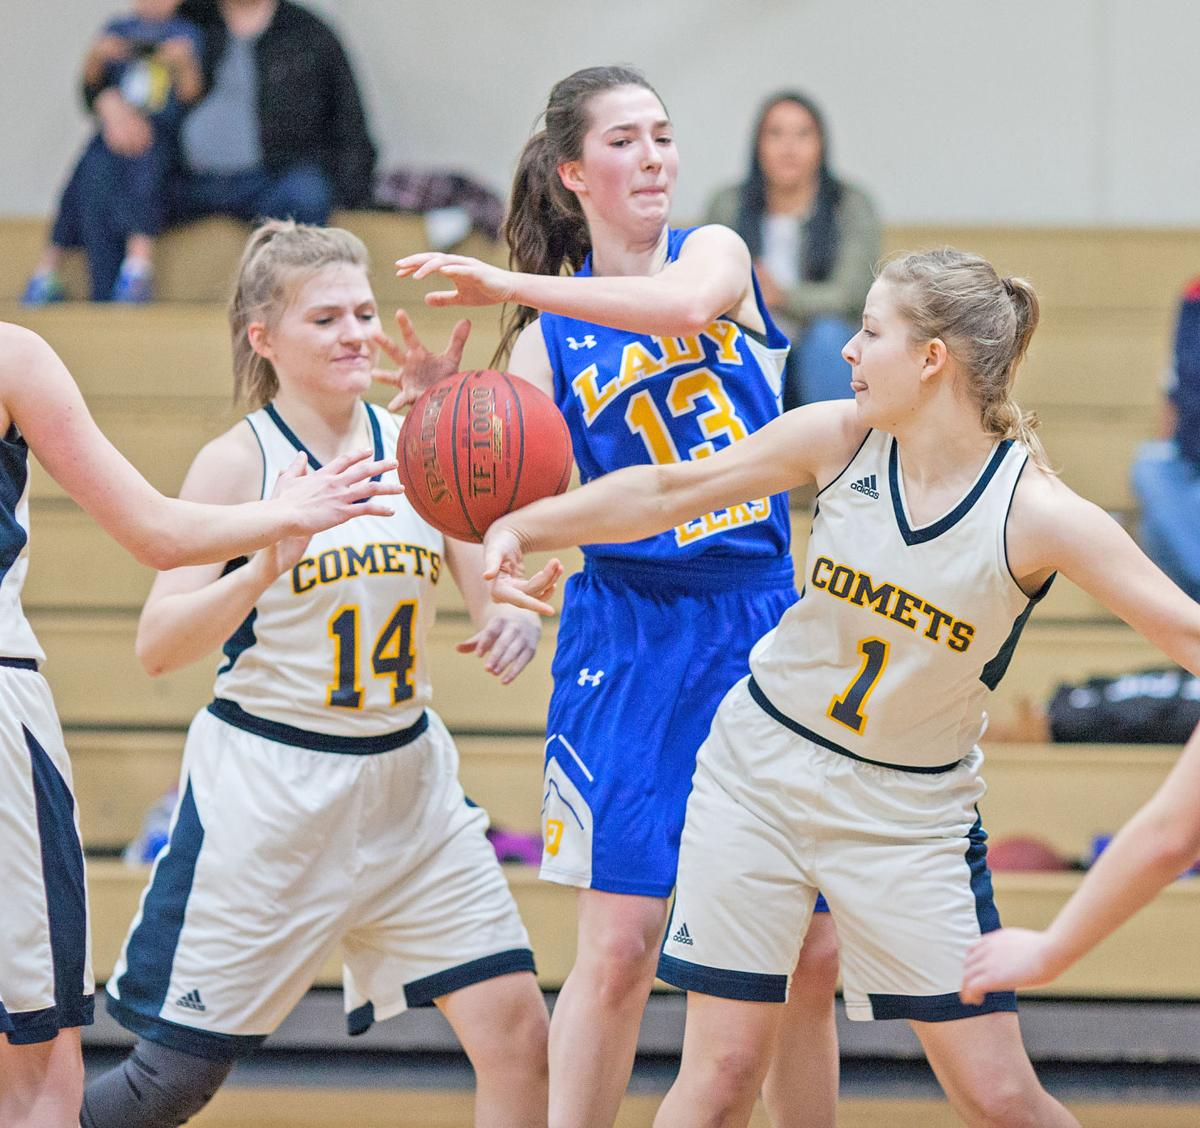 190102_co_sports_nhs_girls_img3.jpg